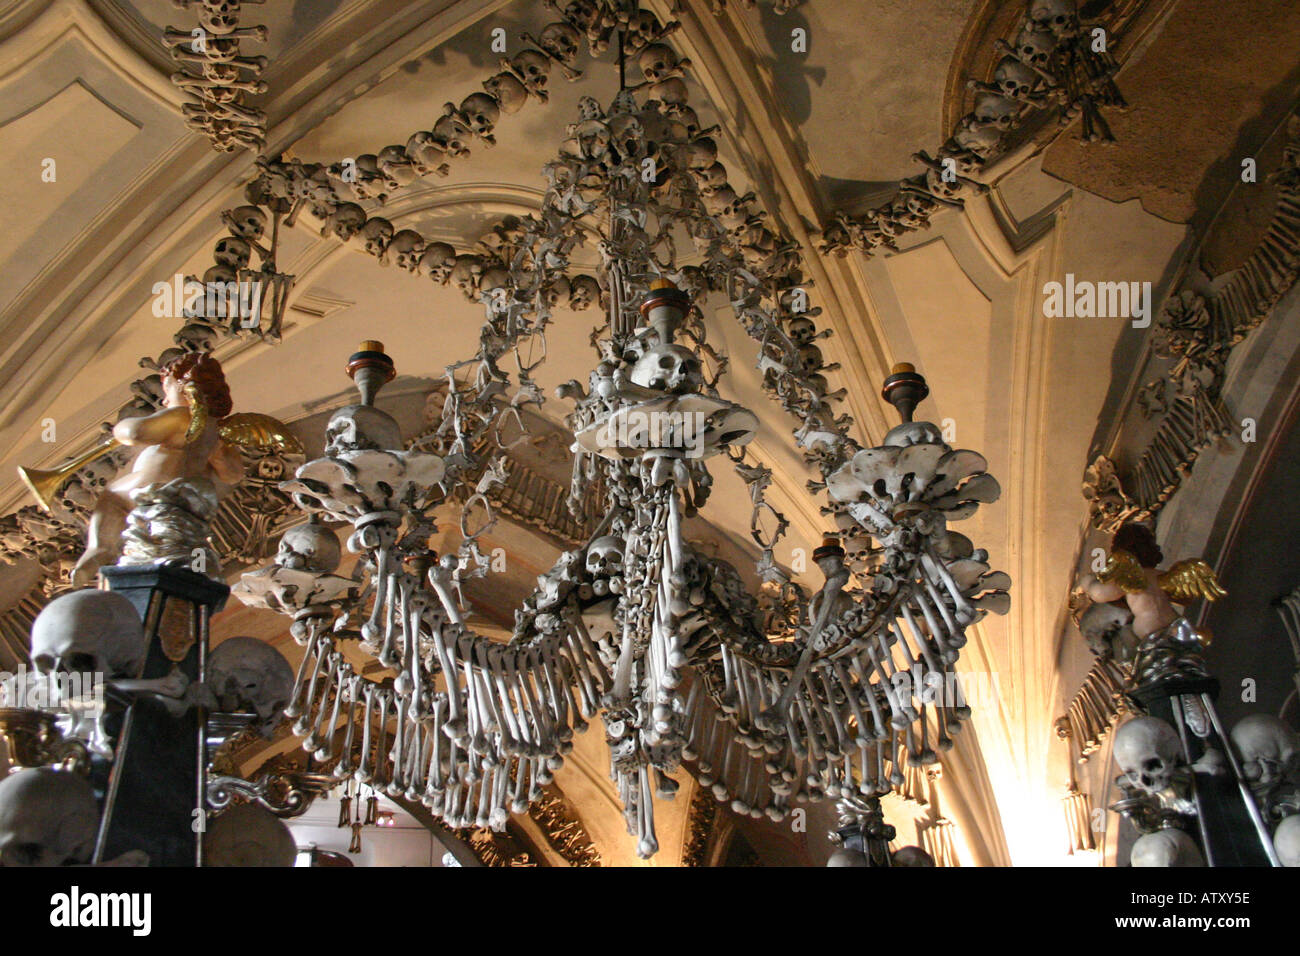 Kutna hora bone chapel chandelier stock photo 5358429 alamy kutna hora bone chapel chandelier aloadofball Image collections